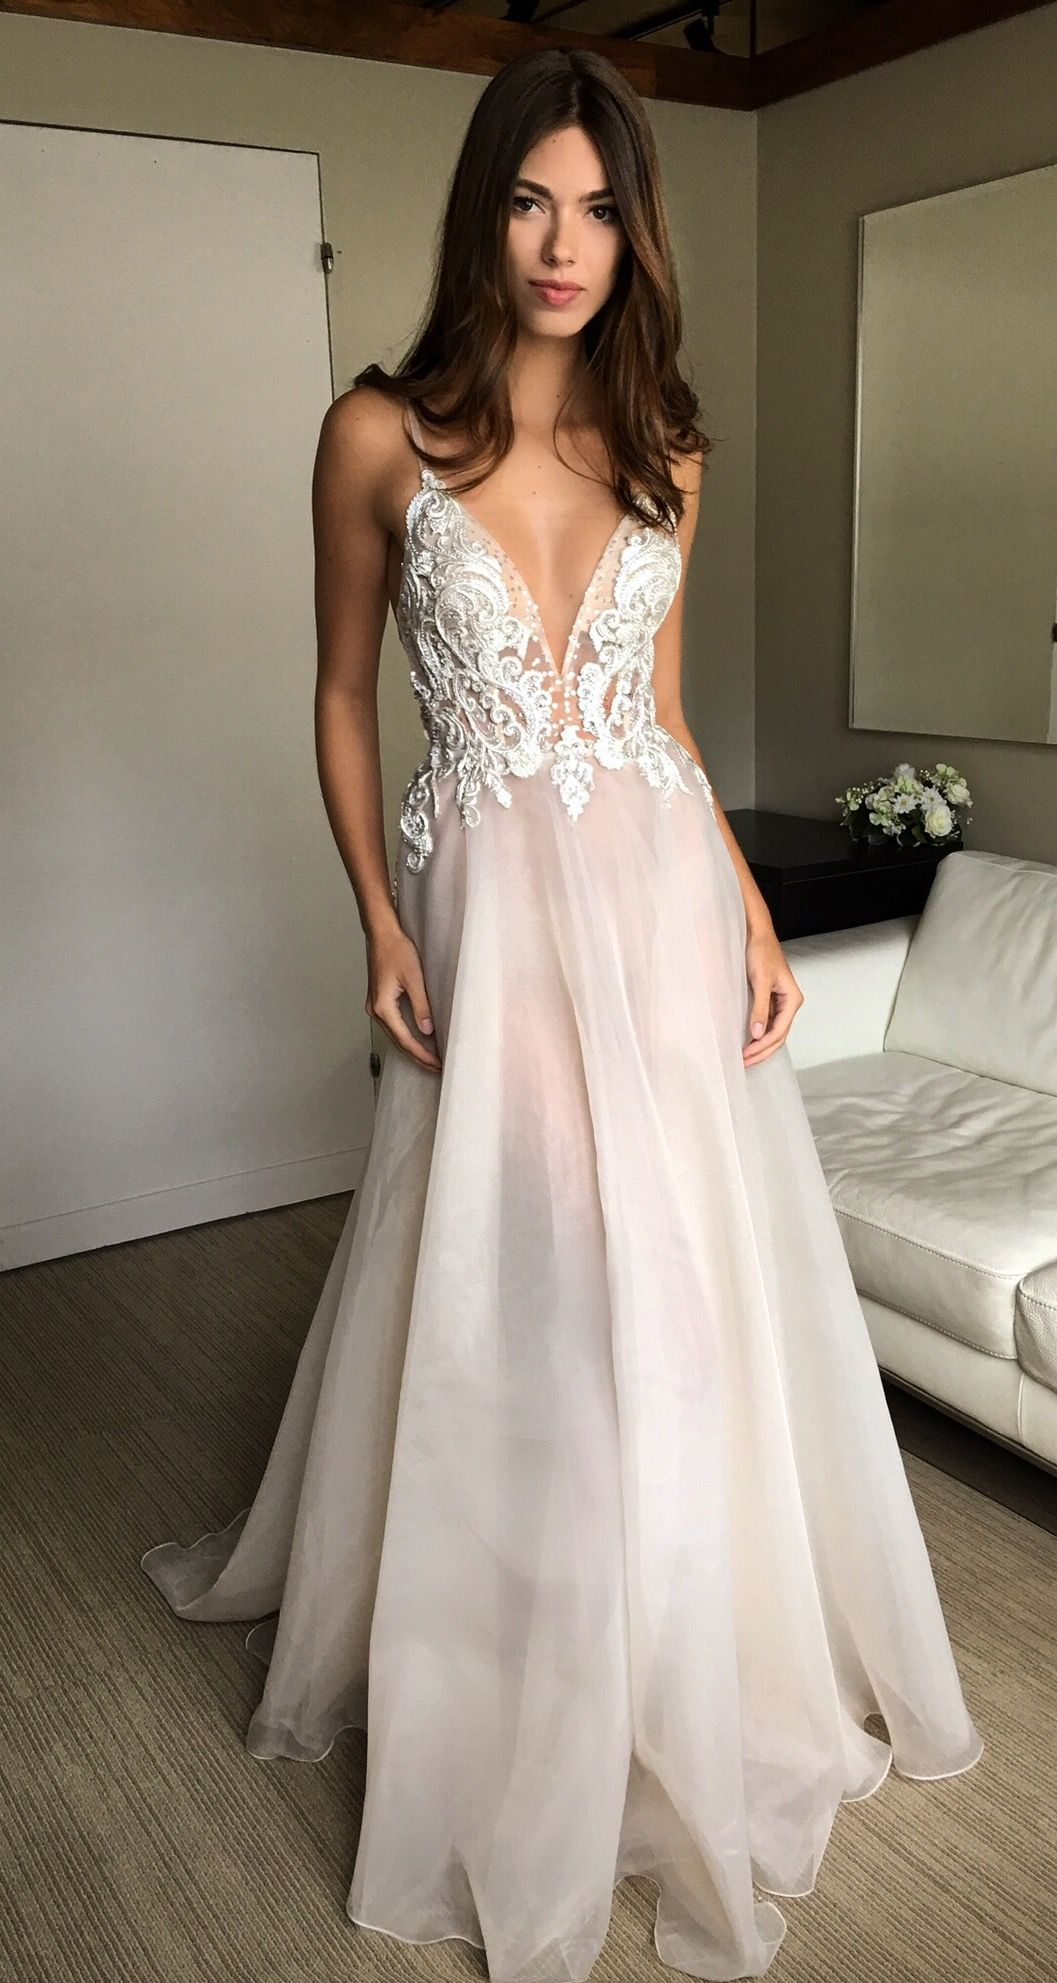 New wedding dress  AMATA from the new bridal line by berta  MUSE   Wedding